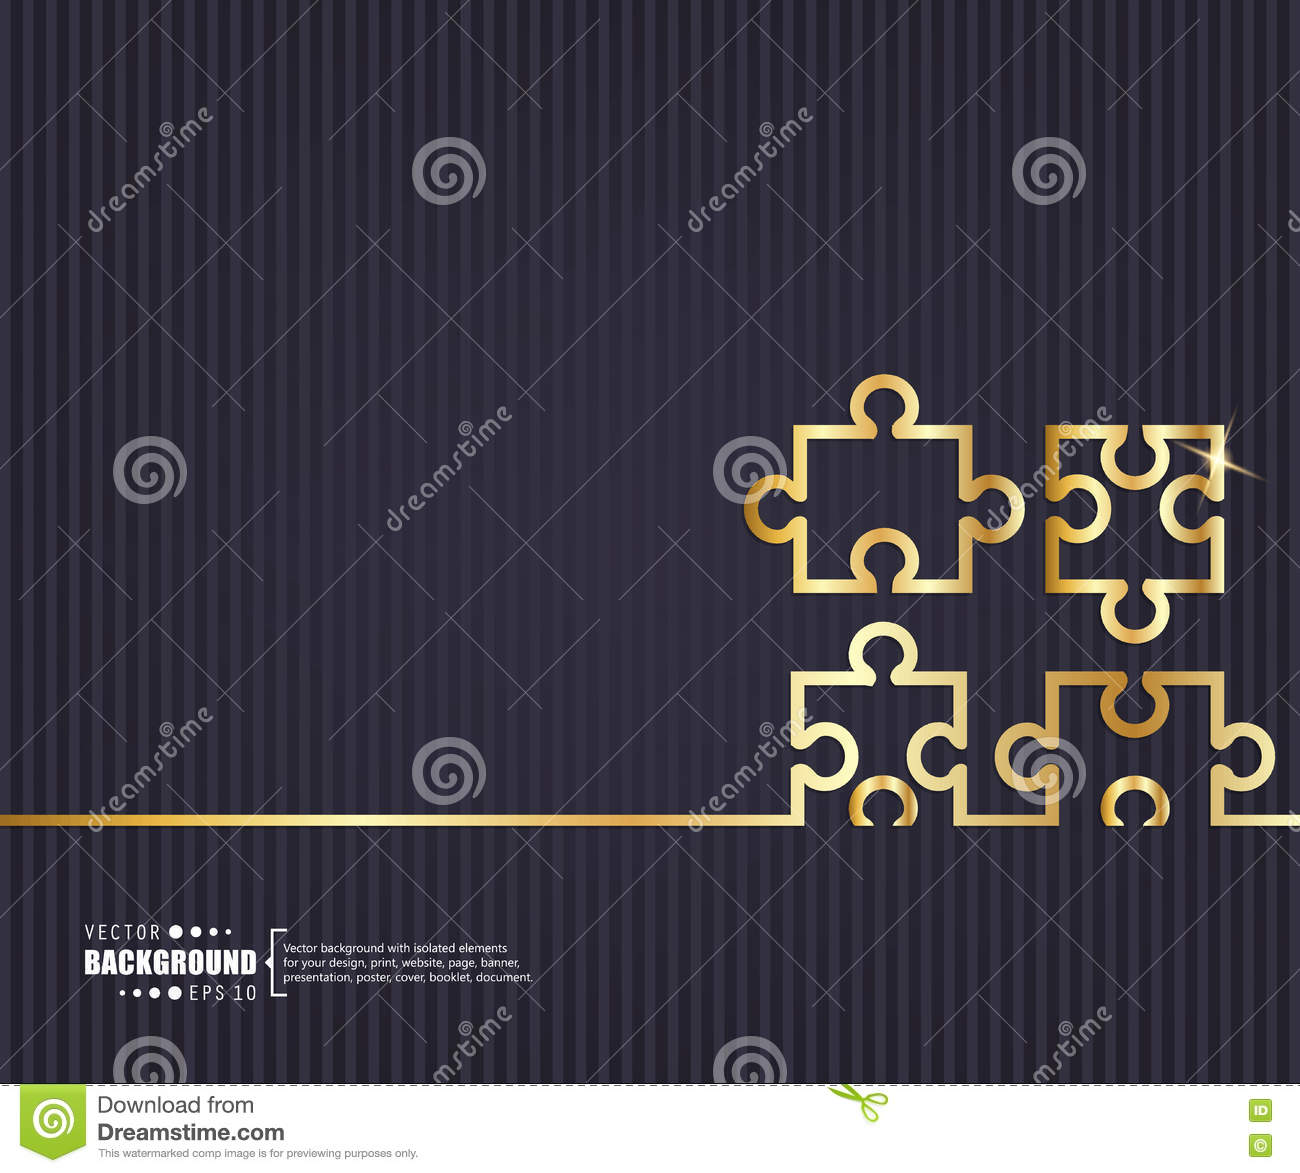 Abstract creative concept vector background. For web and mobile applications, illustration template design, business